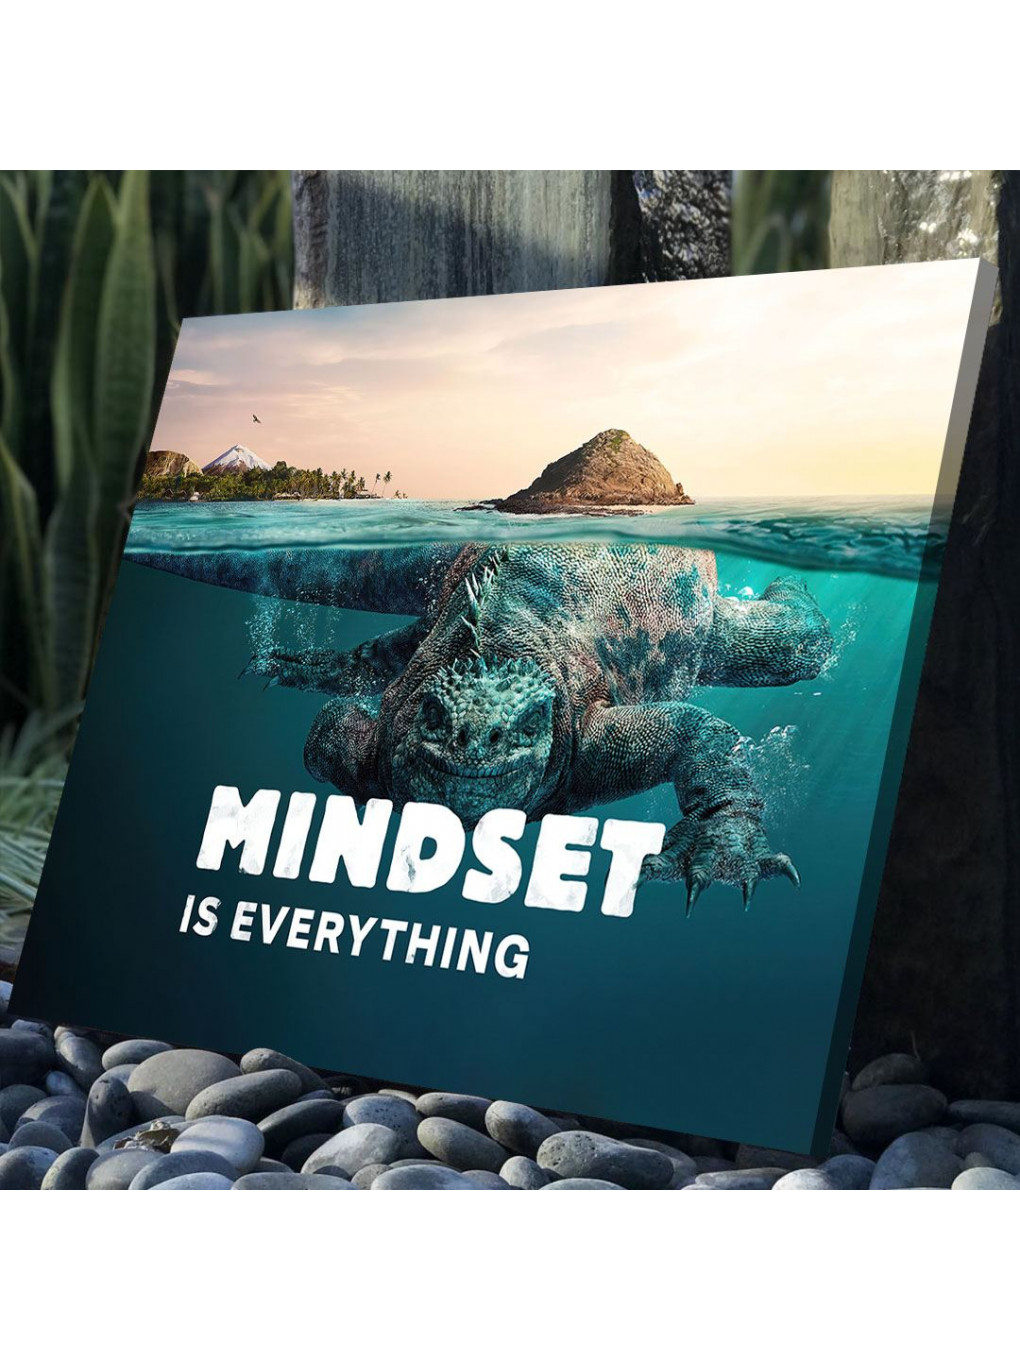 Mindset is everything (Lizzard)_MND119_2